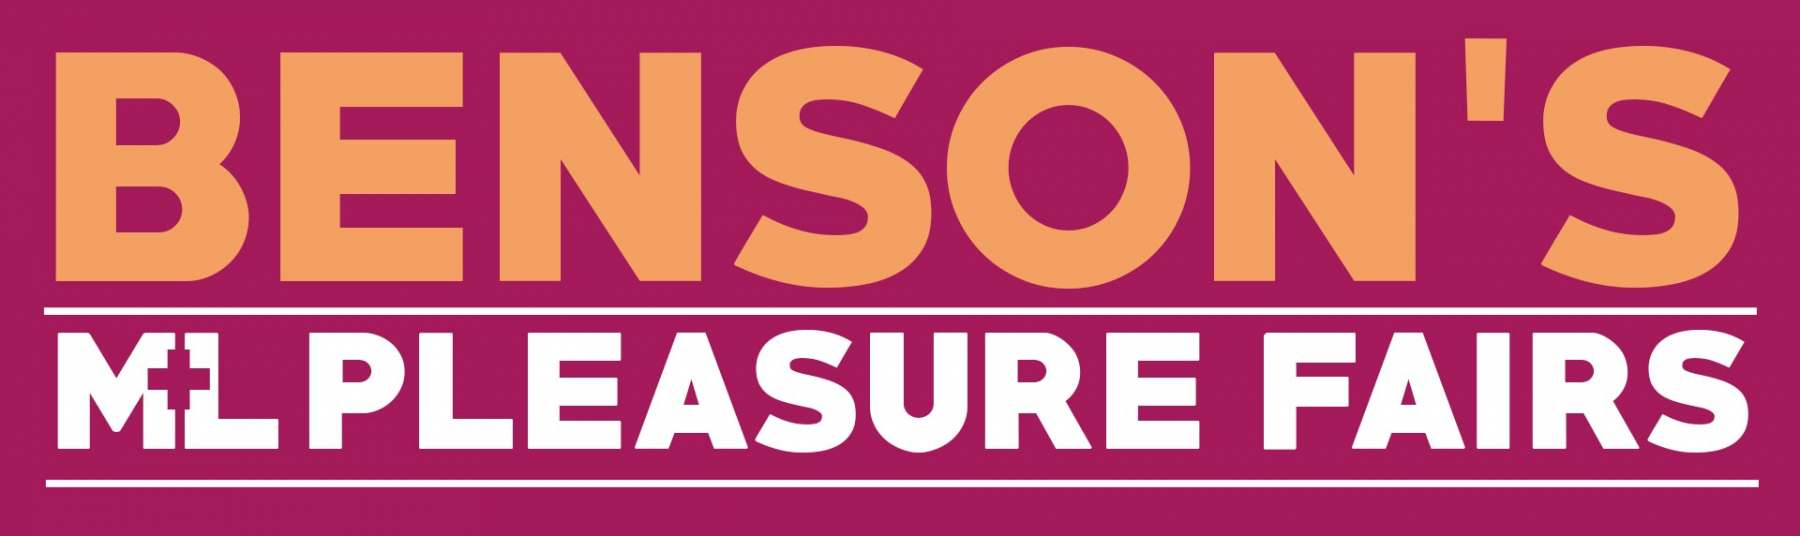 M+L Pleasure Fairs I In Association with Bensons Fun Fairs